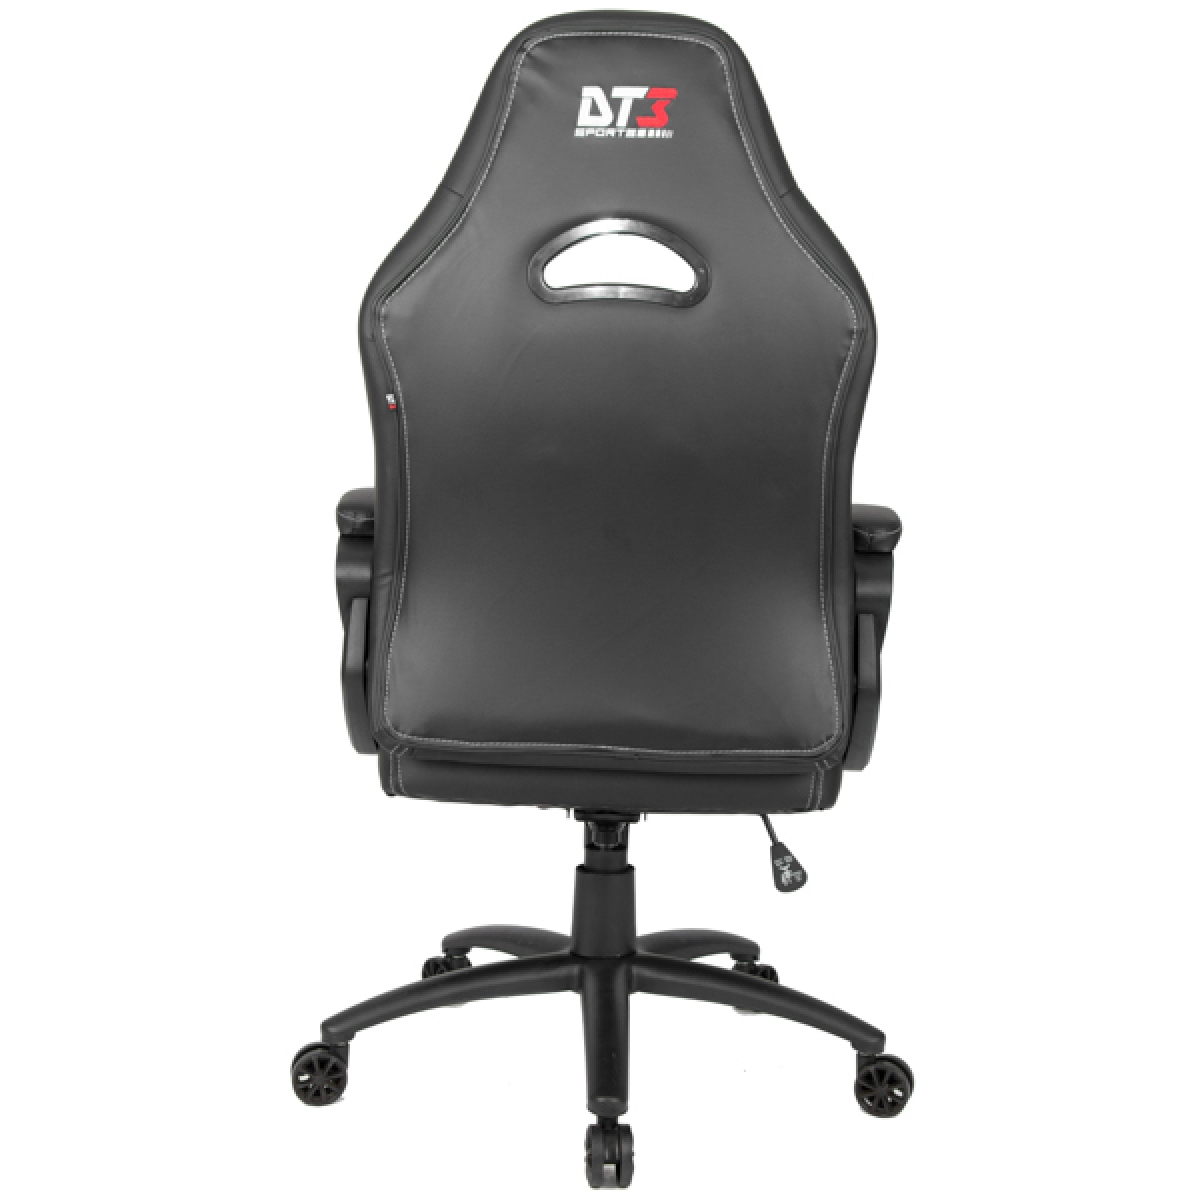 Cadeira Gamer DT3sports GTO, White V1, 11826-8